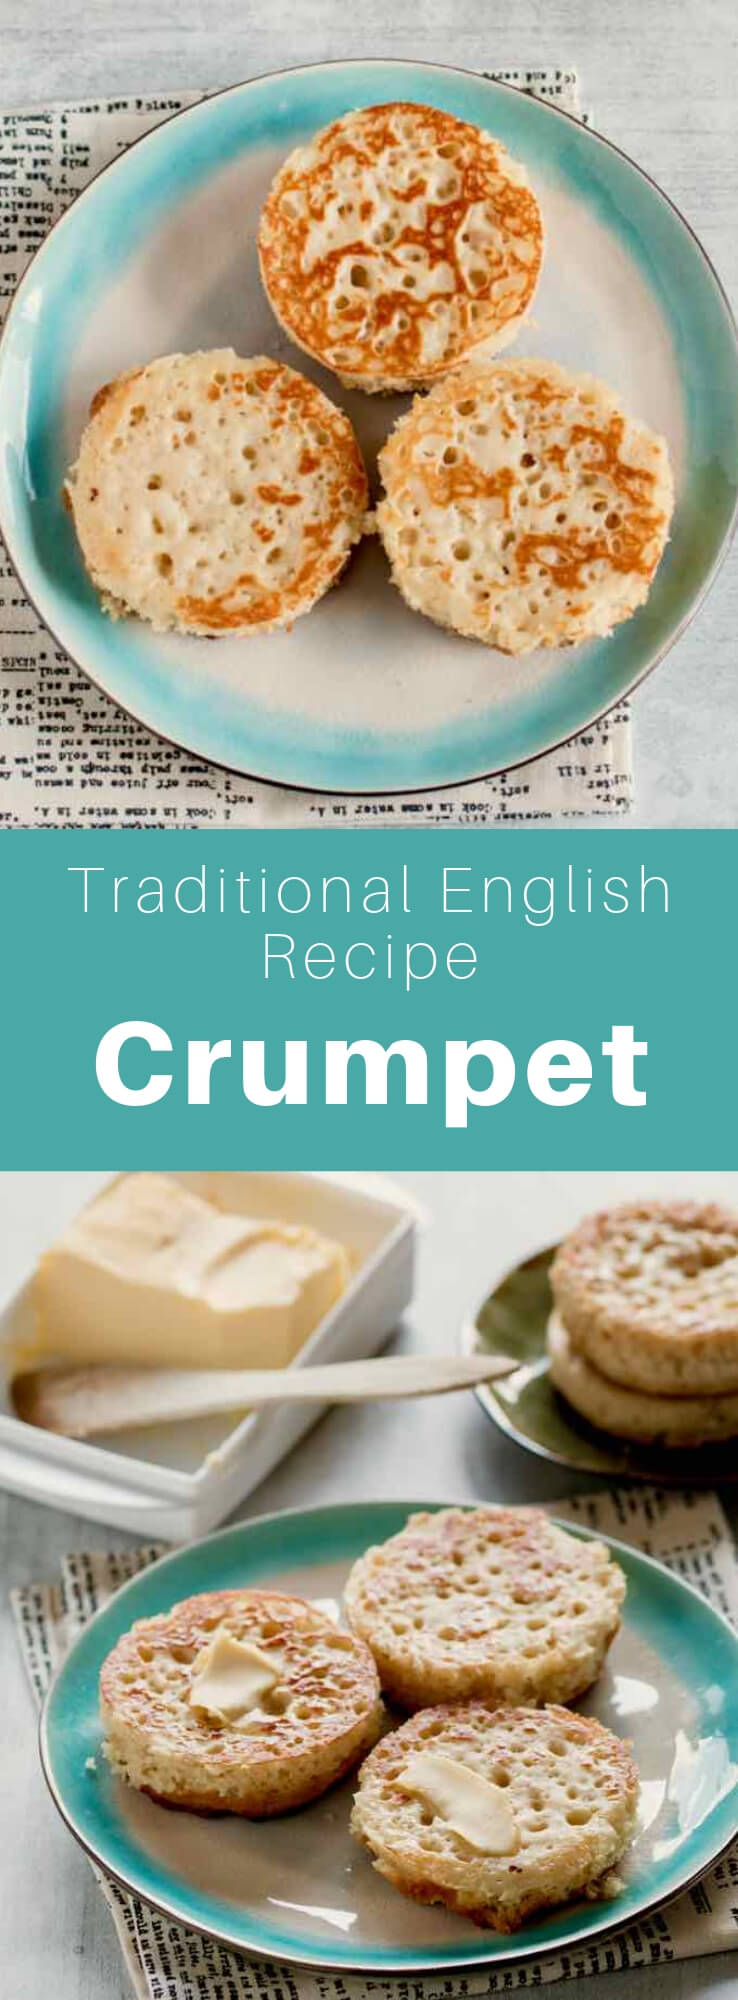 Crumpet is a bread made of flour and yeast. It is consumed mainly in the United Kingdom, but also throughout the Commonwealth. #UnitedKingdom #EnglishCuisine #BritishCuisine #EnglishFood #BritishFood #EnglishRecipe #BritishRecipe #WorldCuisine #196flavors